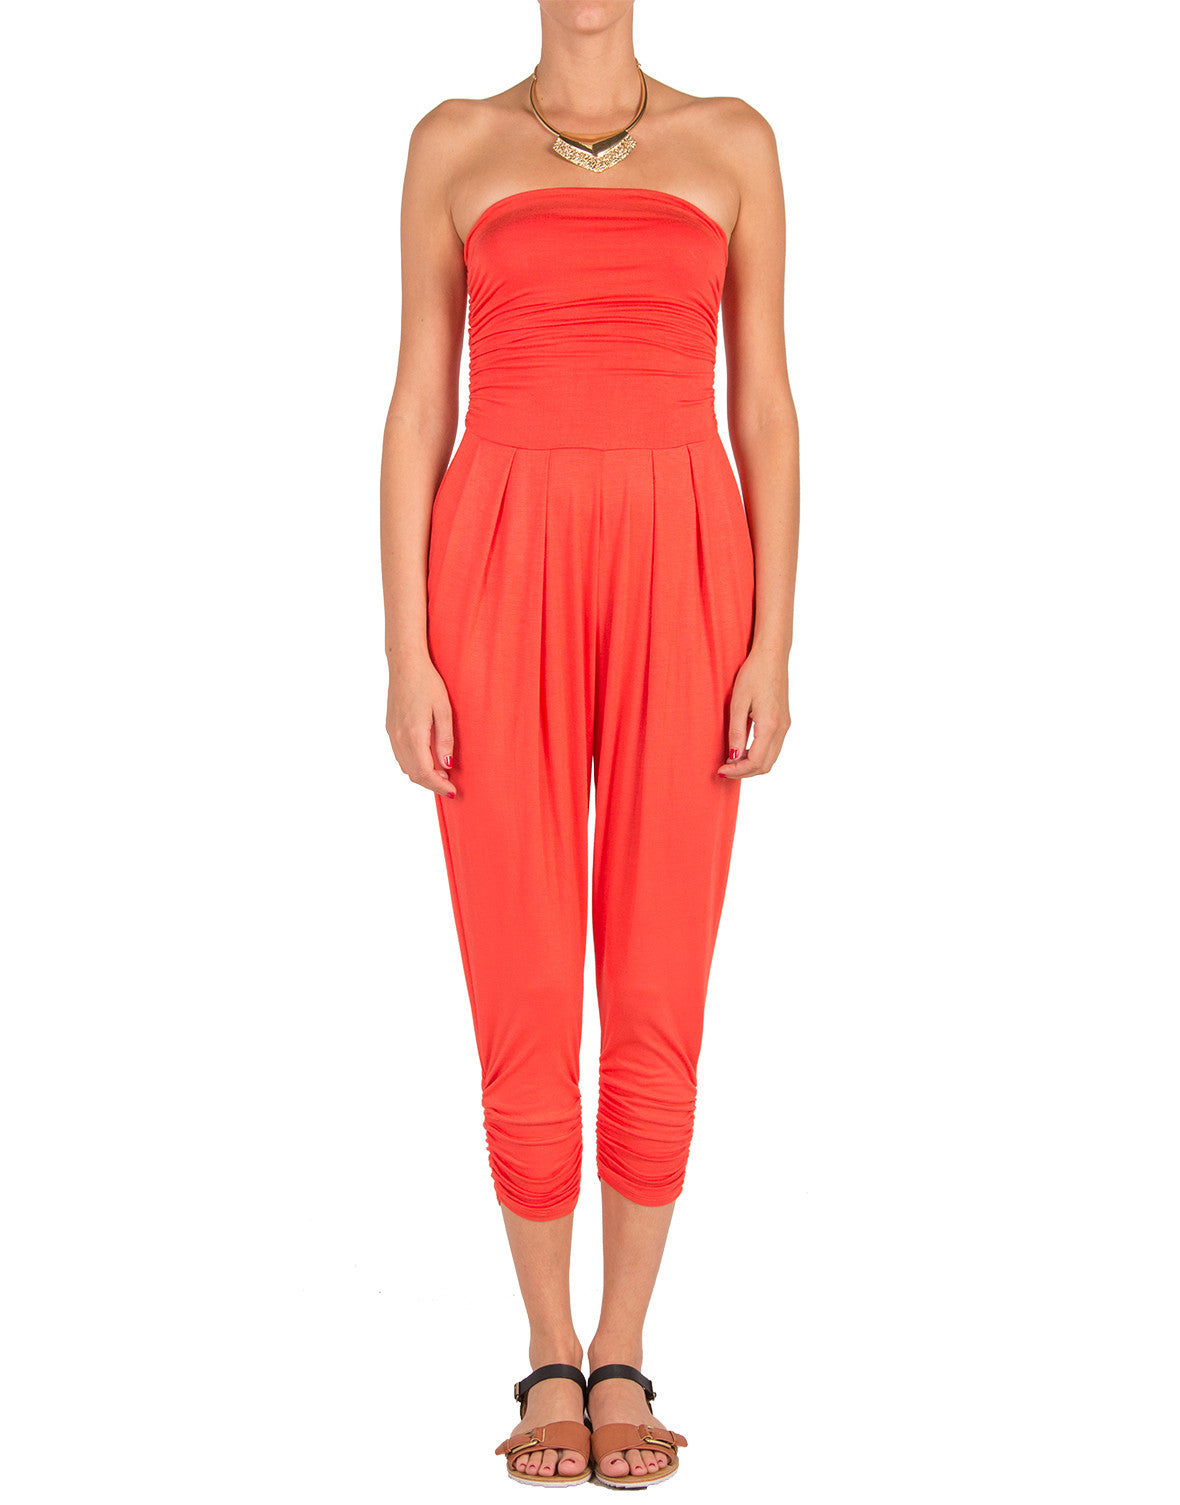 Strapless Jumpsuit - Red Orange - Medium